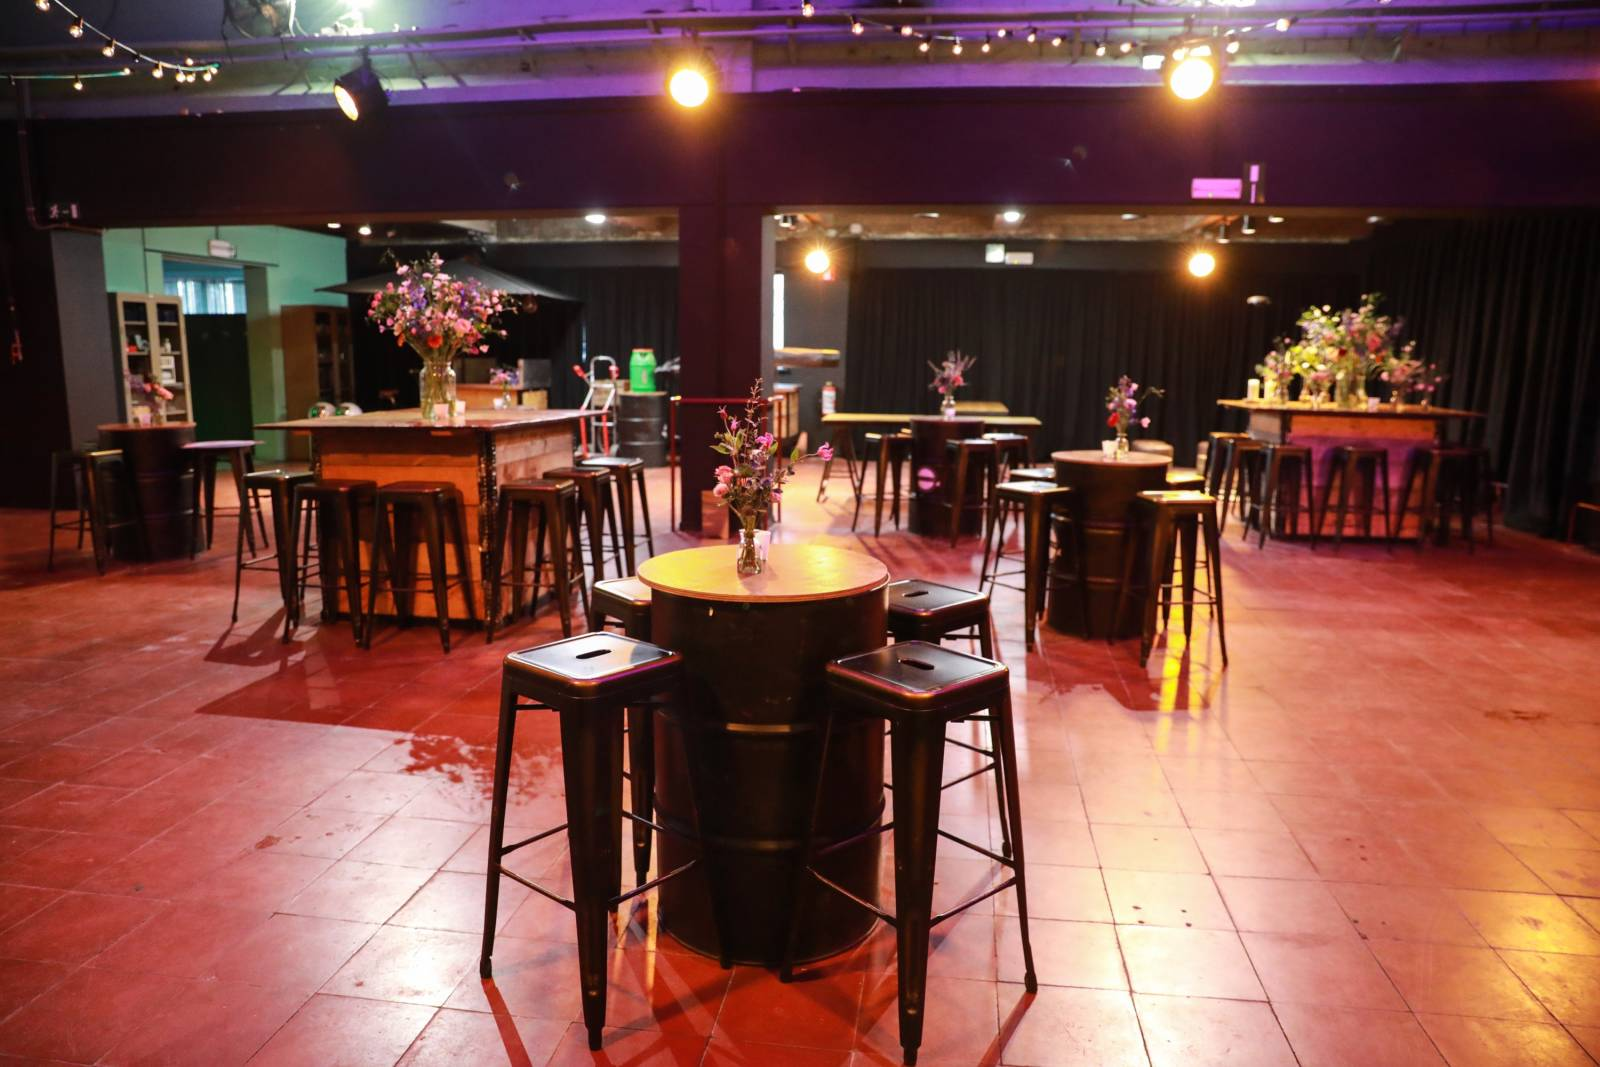 The Lab - Feestzaal - Feestlocatie - Huwelijk - Event - Feest - House of Weddings & House of Events - 32